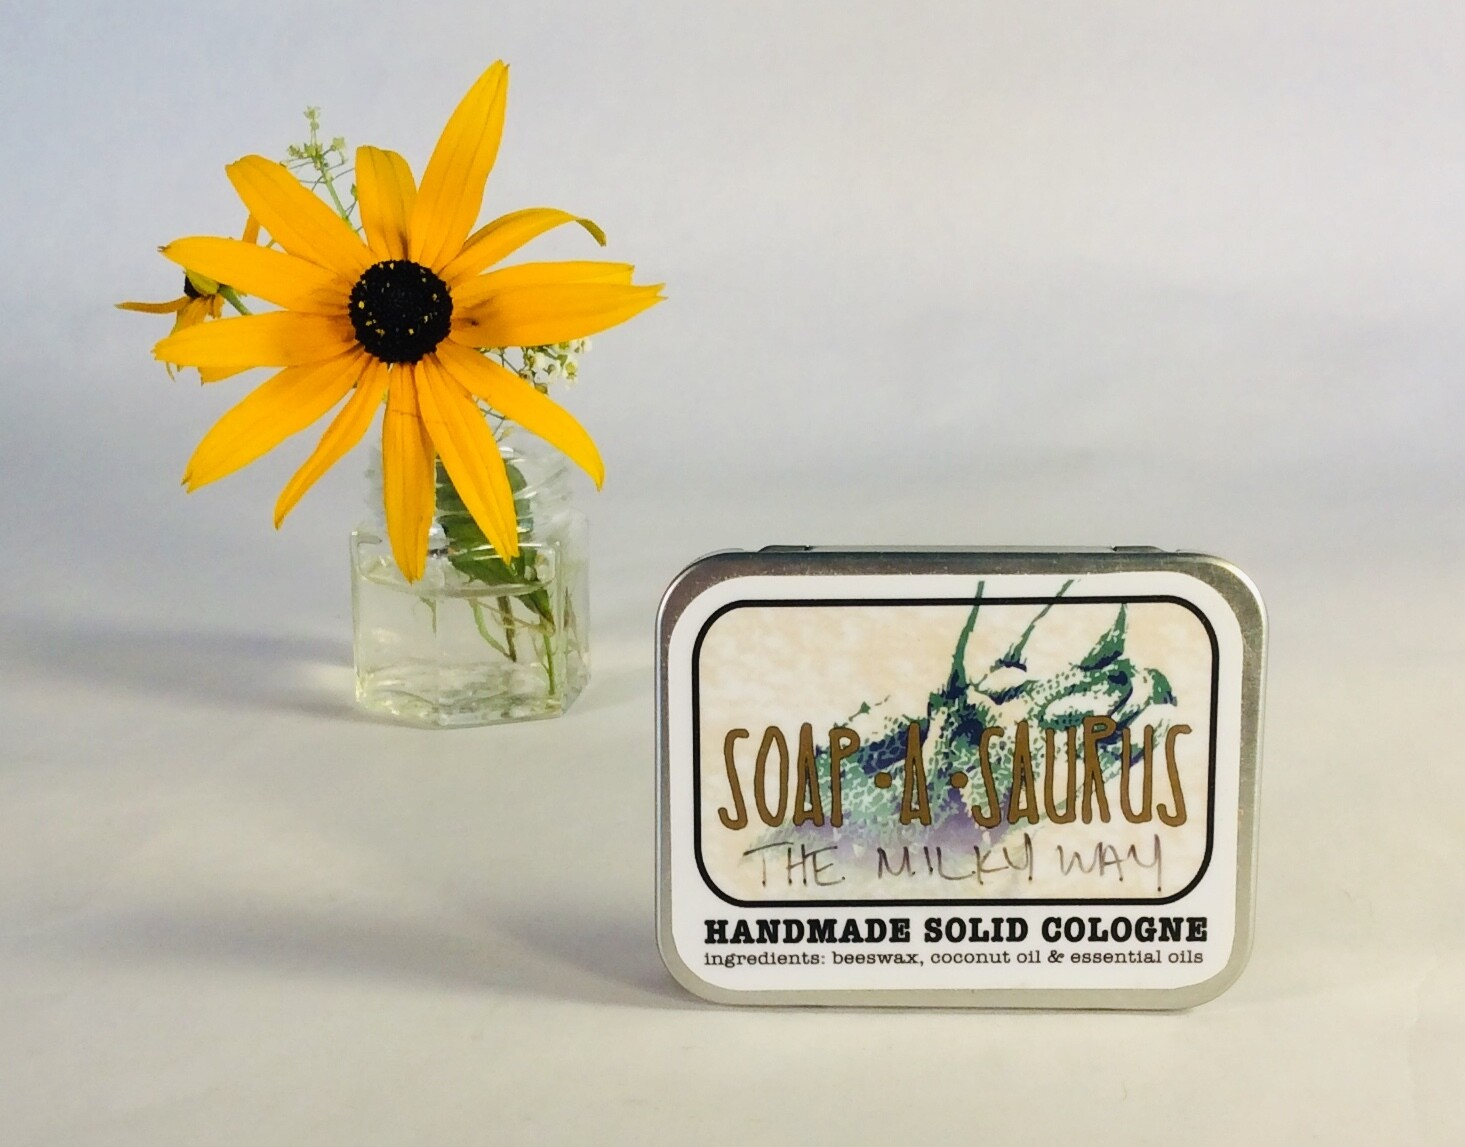 cologne, solid, all-natural, handmade, The Milky Way scent; Soap-A-Saurus; each